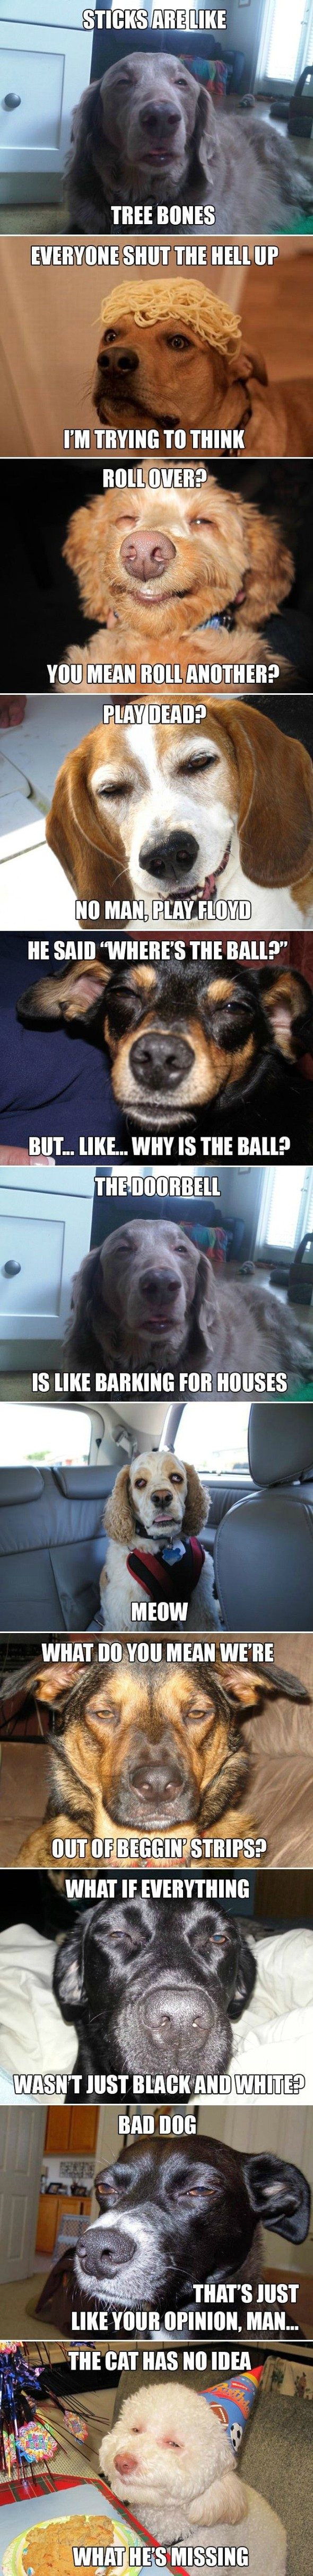 funny-meme-high-dogs.jpg